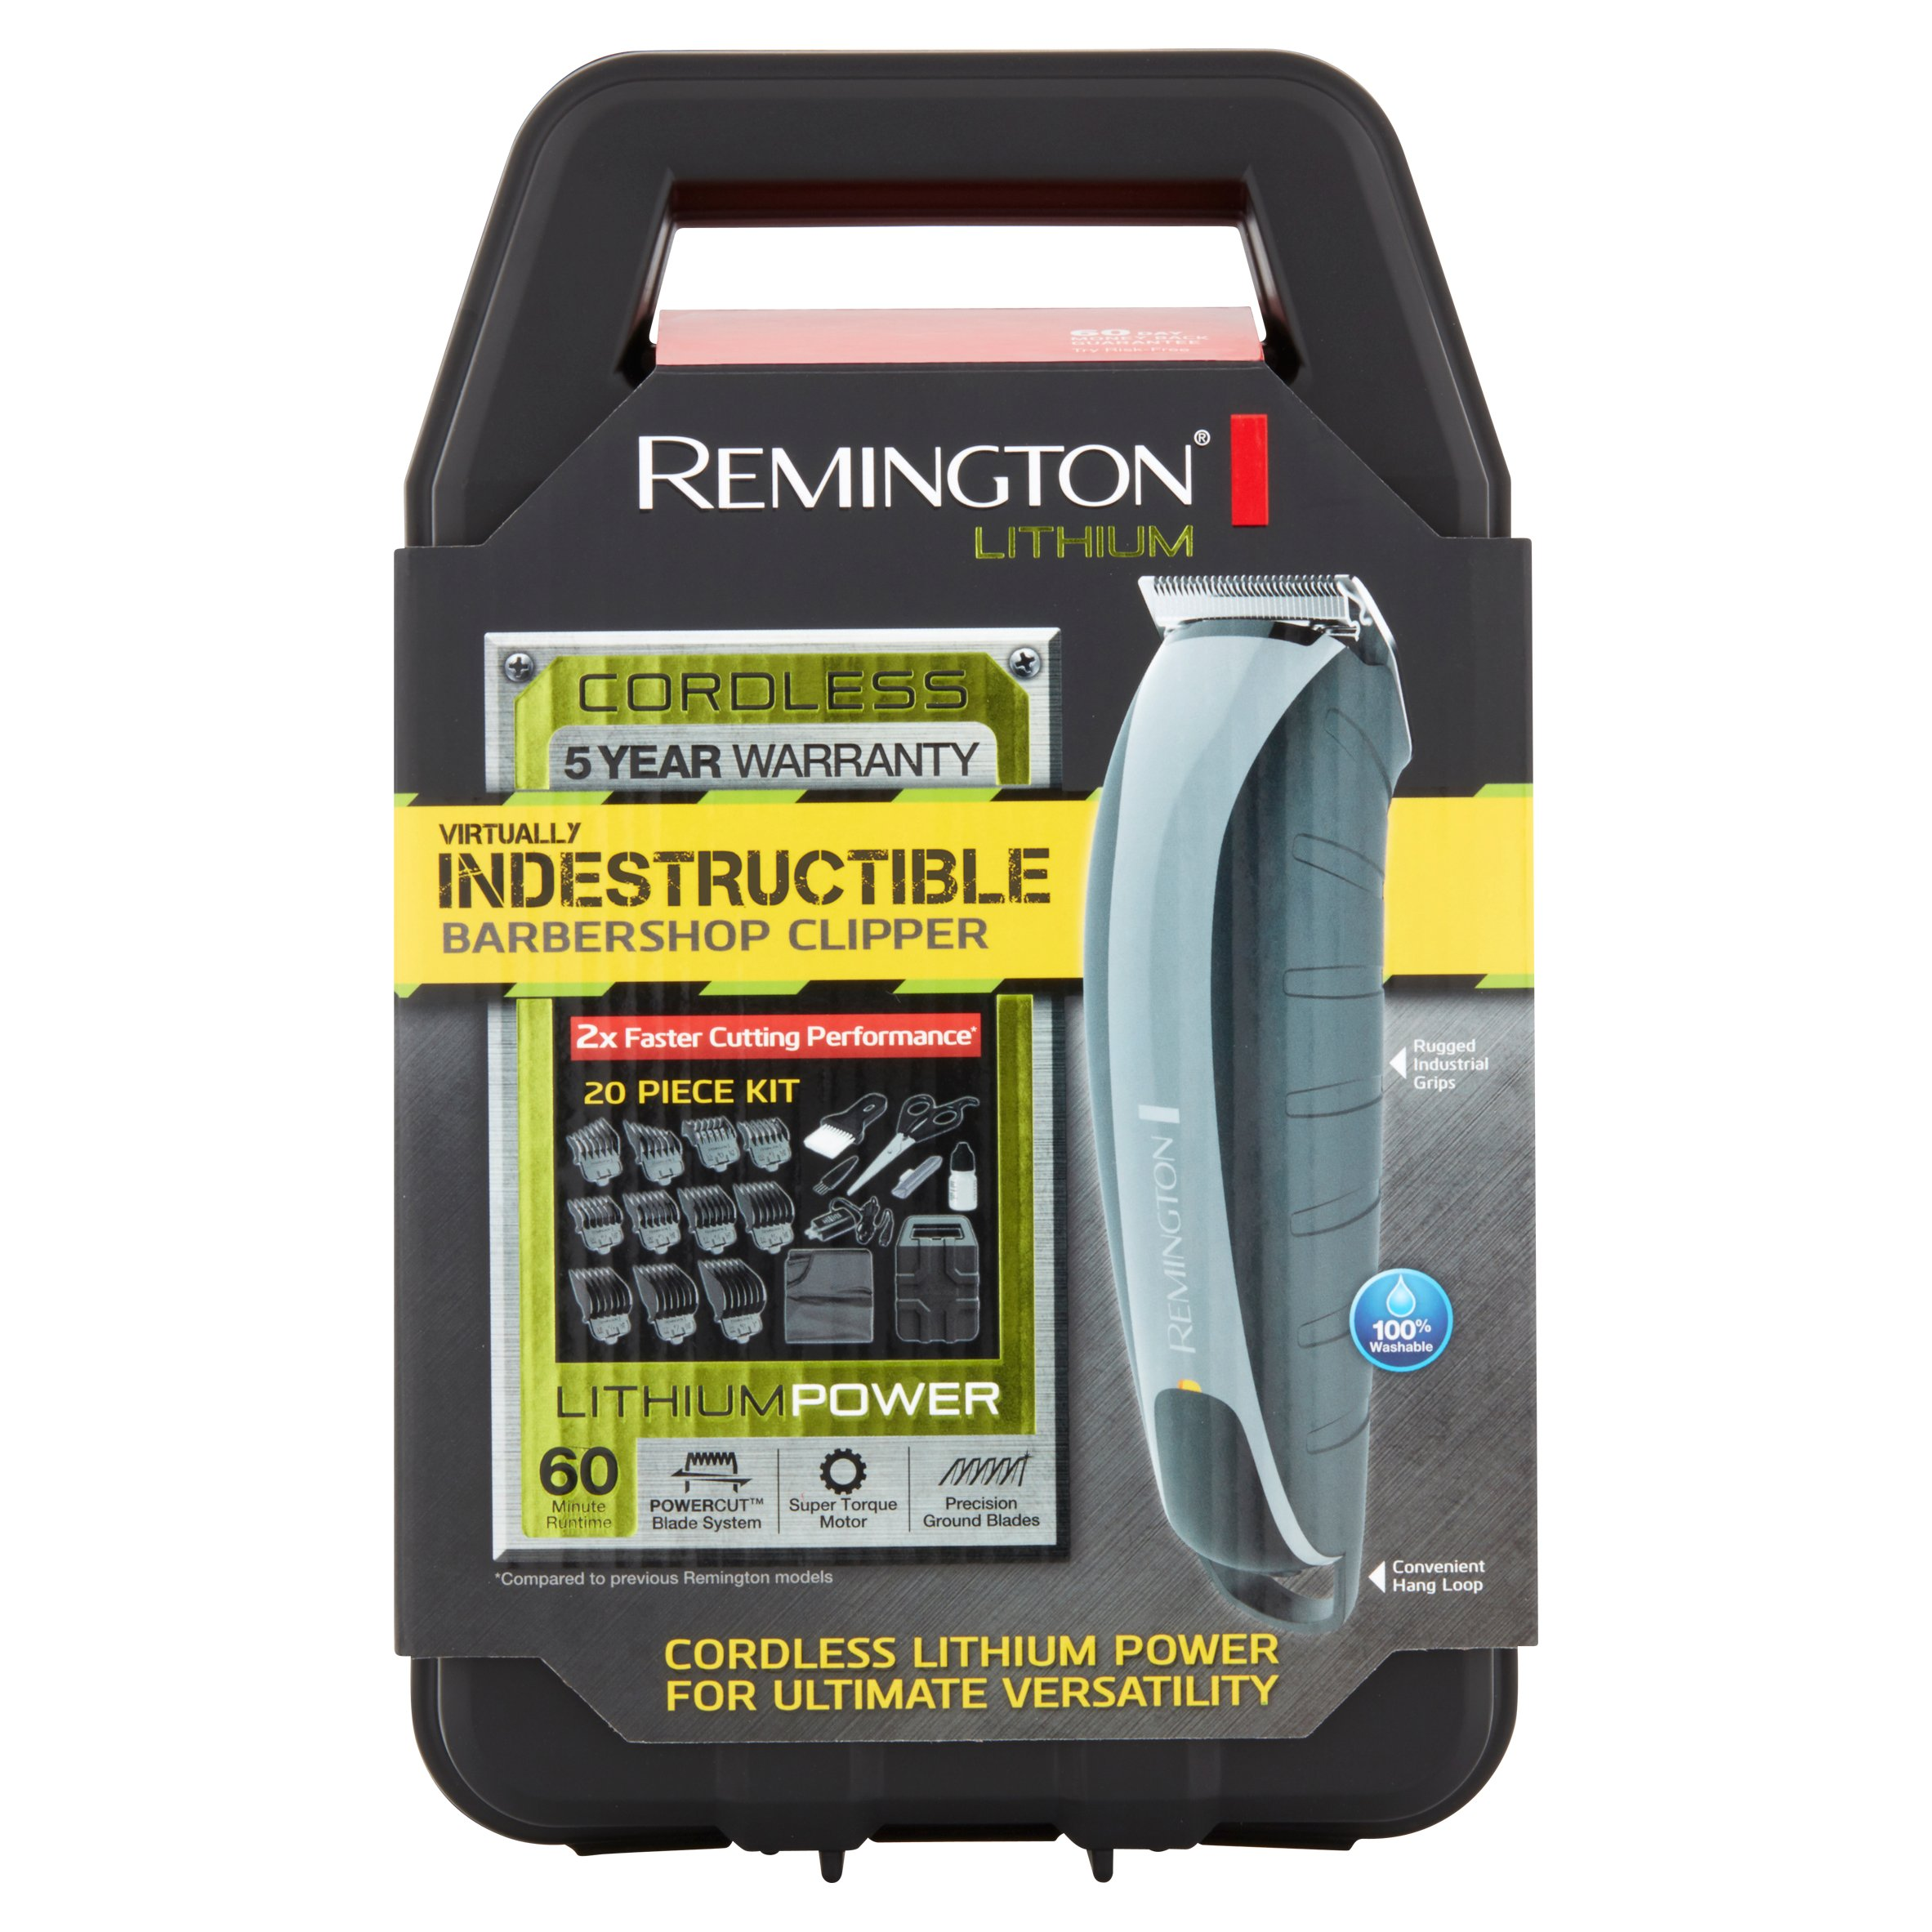 Remington Lithium Virtually Indestructible Barbershop Clipper, 20 count